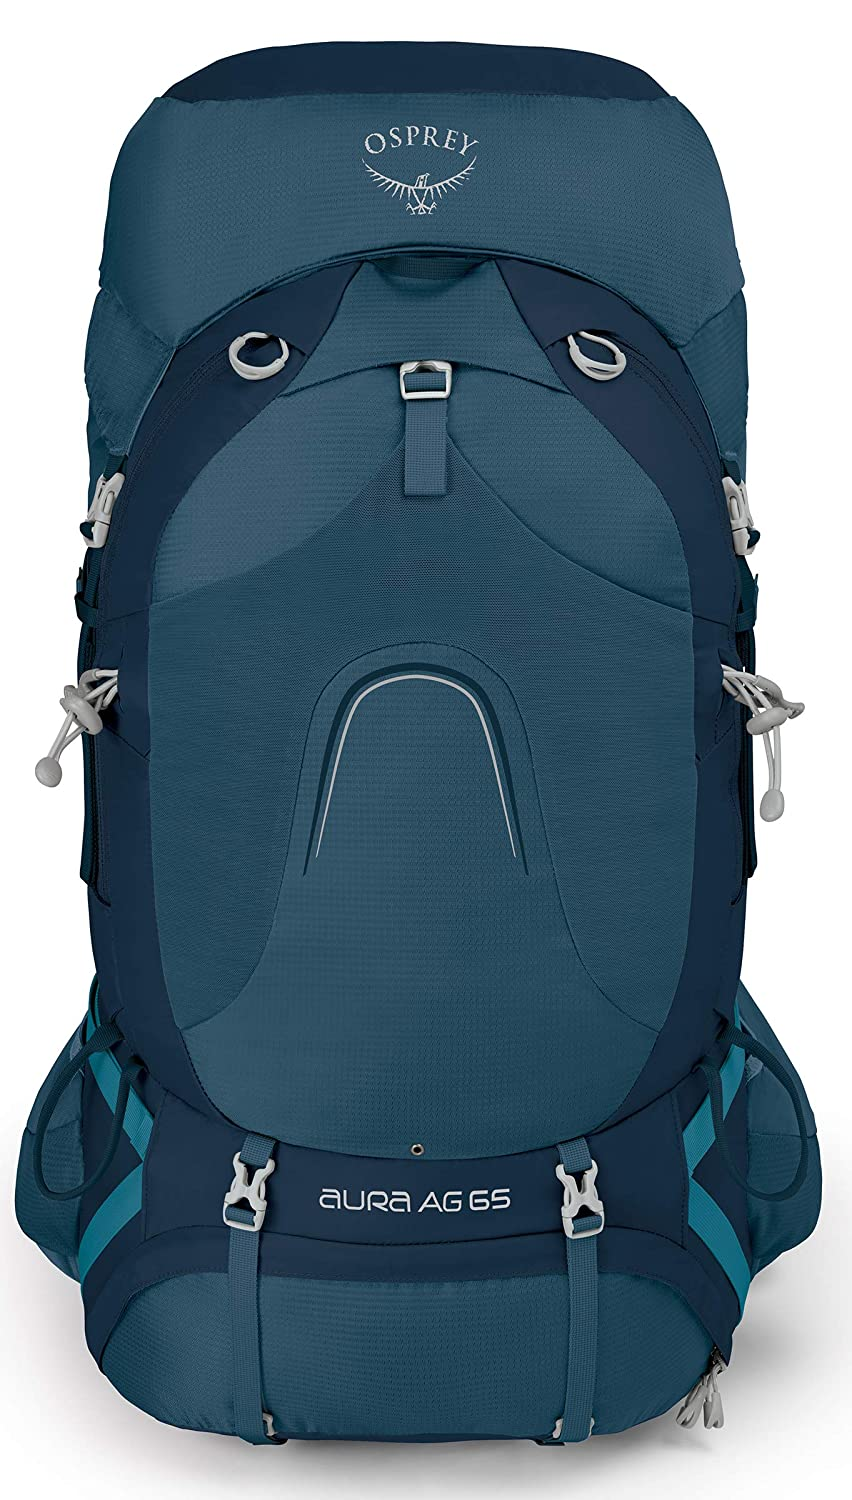 ac2f379905 Amazon.com   Osprey Packs Aura Ag 65 Women s Backpacking Pack   Sports    Outdoors